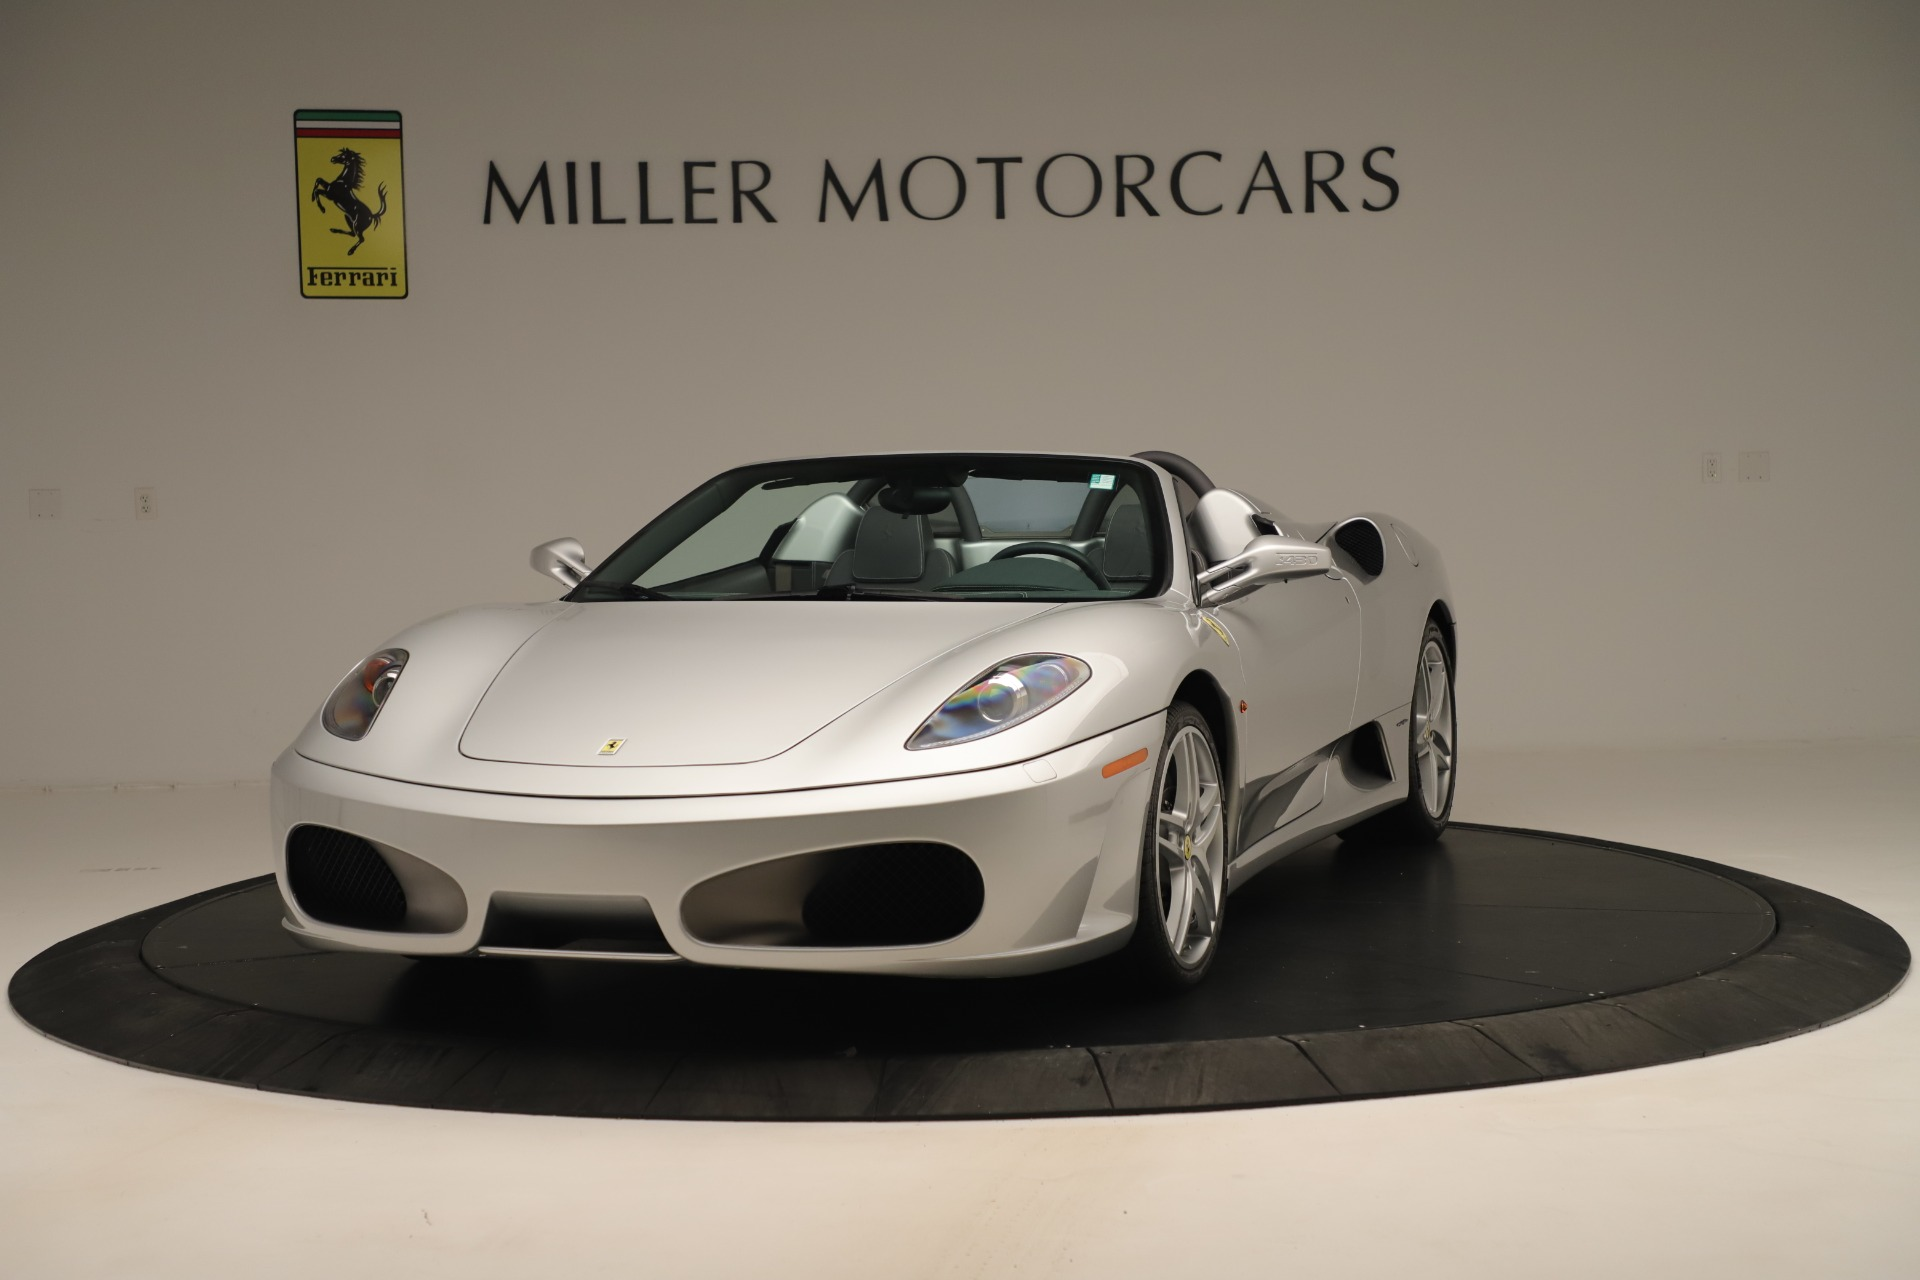 Used 2008 Ferrari F430 Spider for sale $125,900 at Pagani of Greenwich in Greenwich CT 06830 1